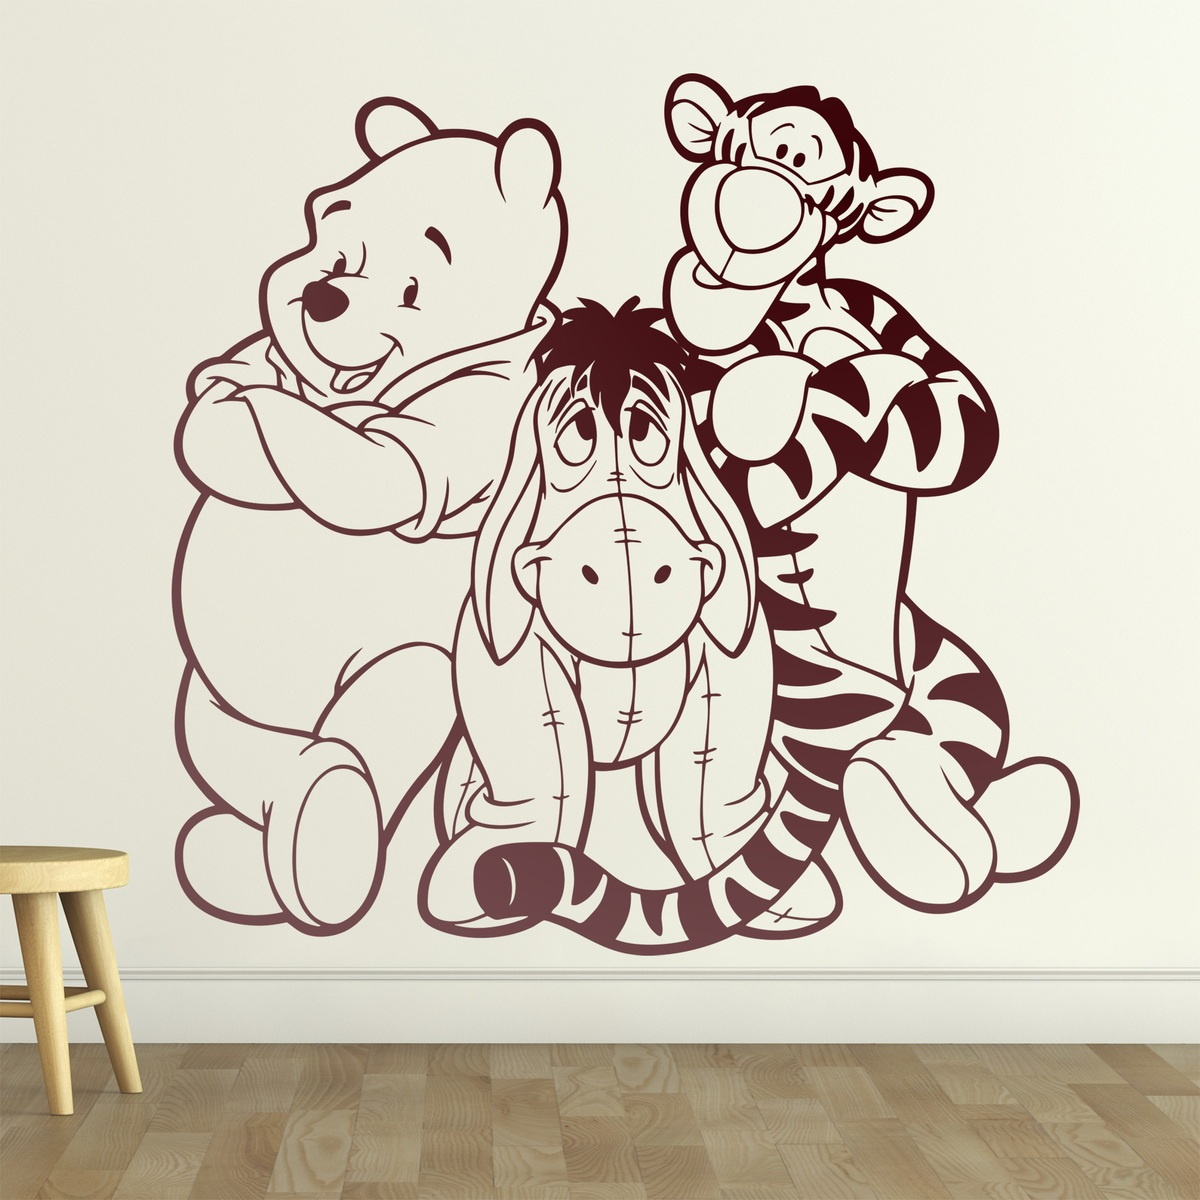 adesivo murale per bambini disney winnie the pooh. Black Bedroom Furniture Sets. Home Design Ideas